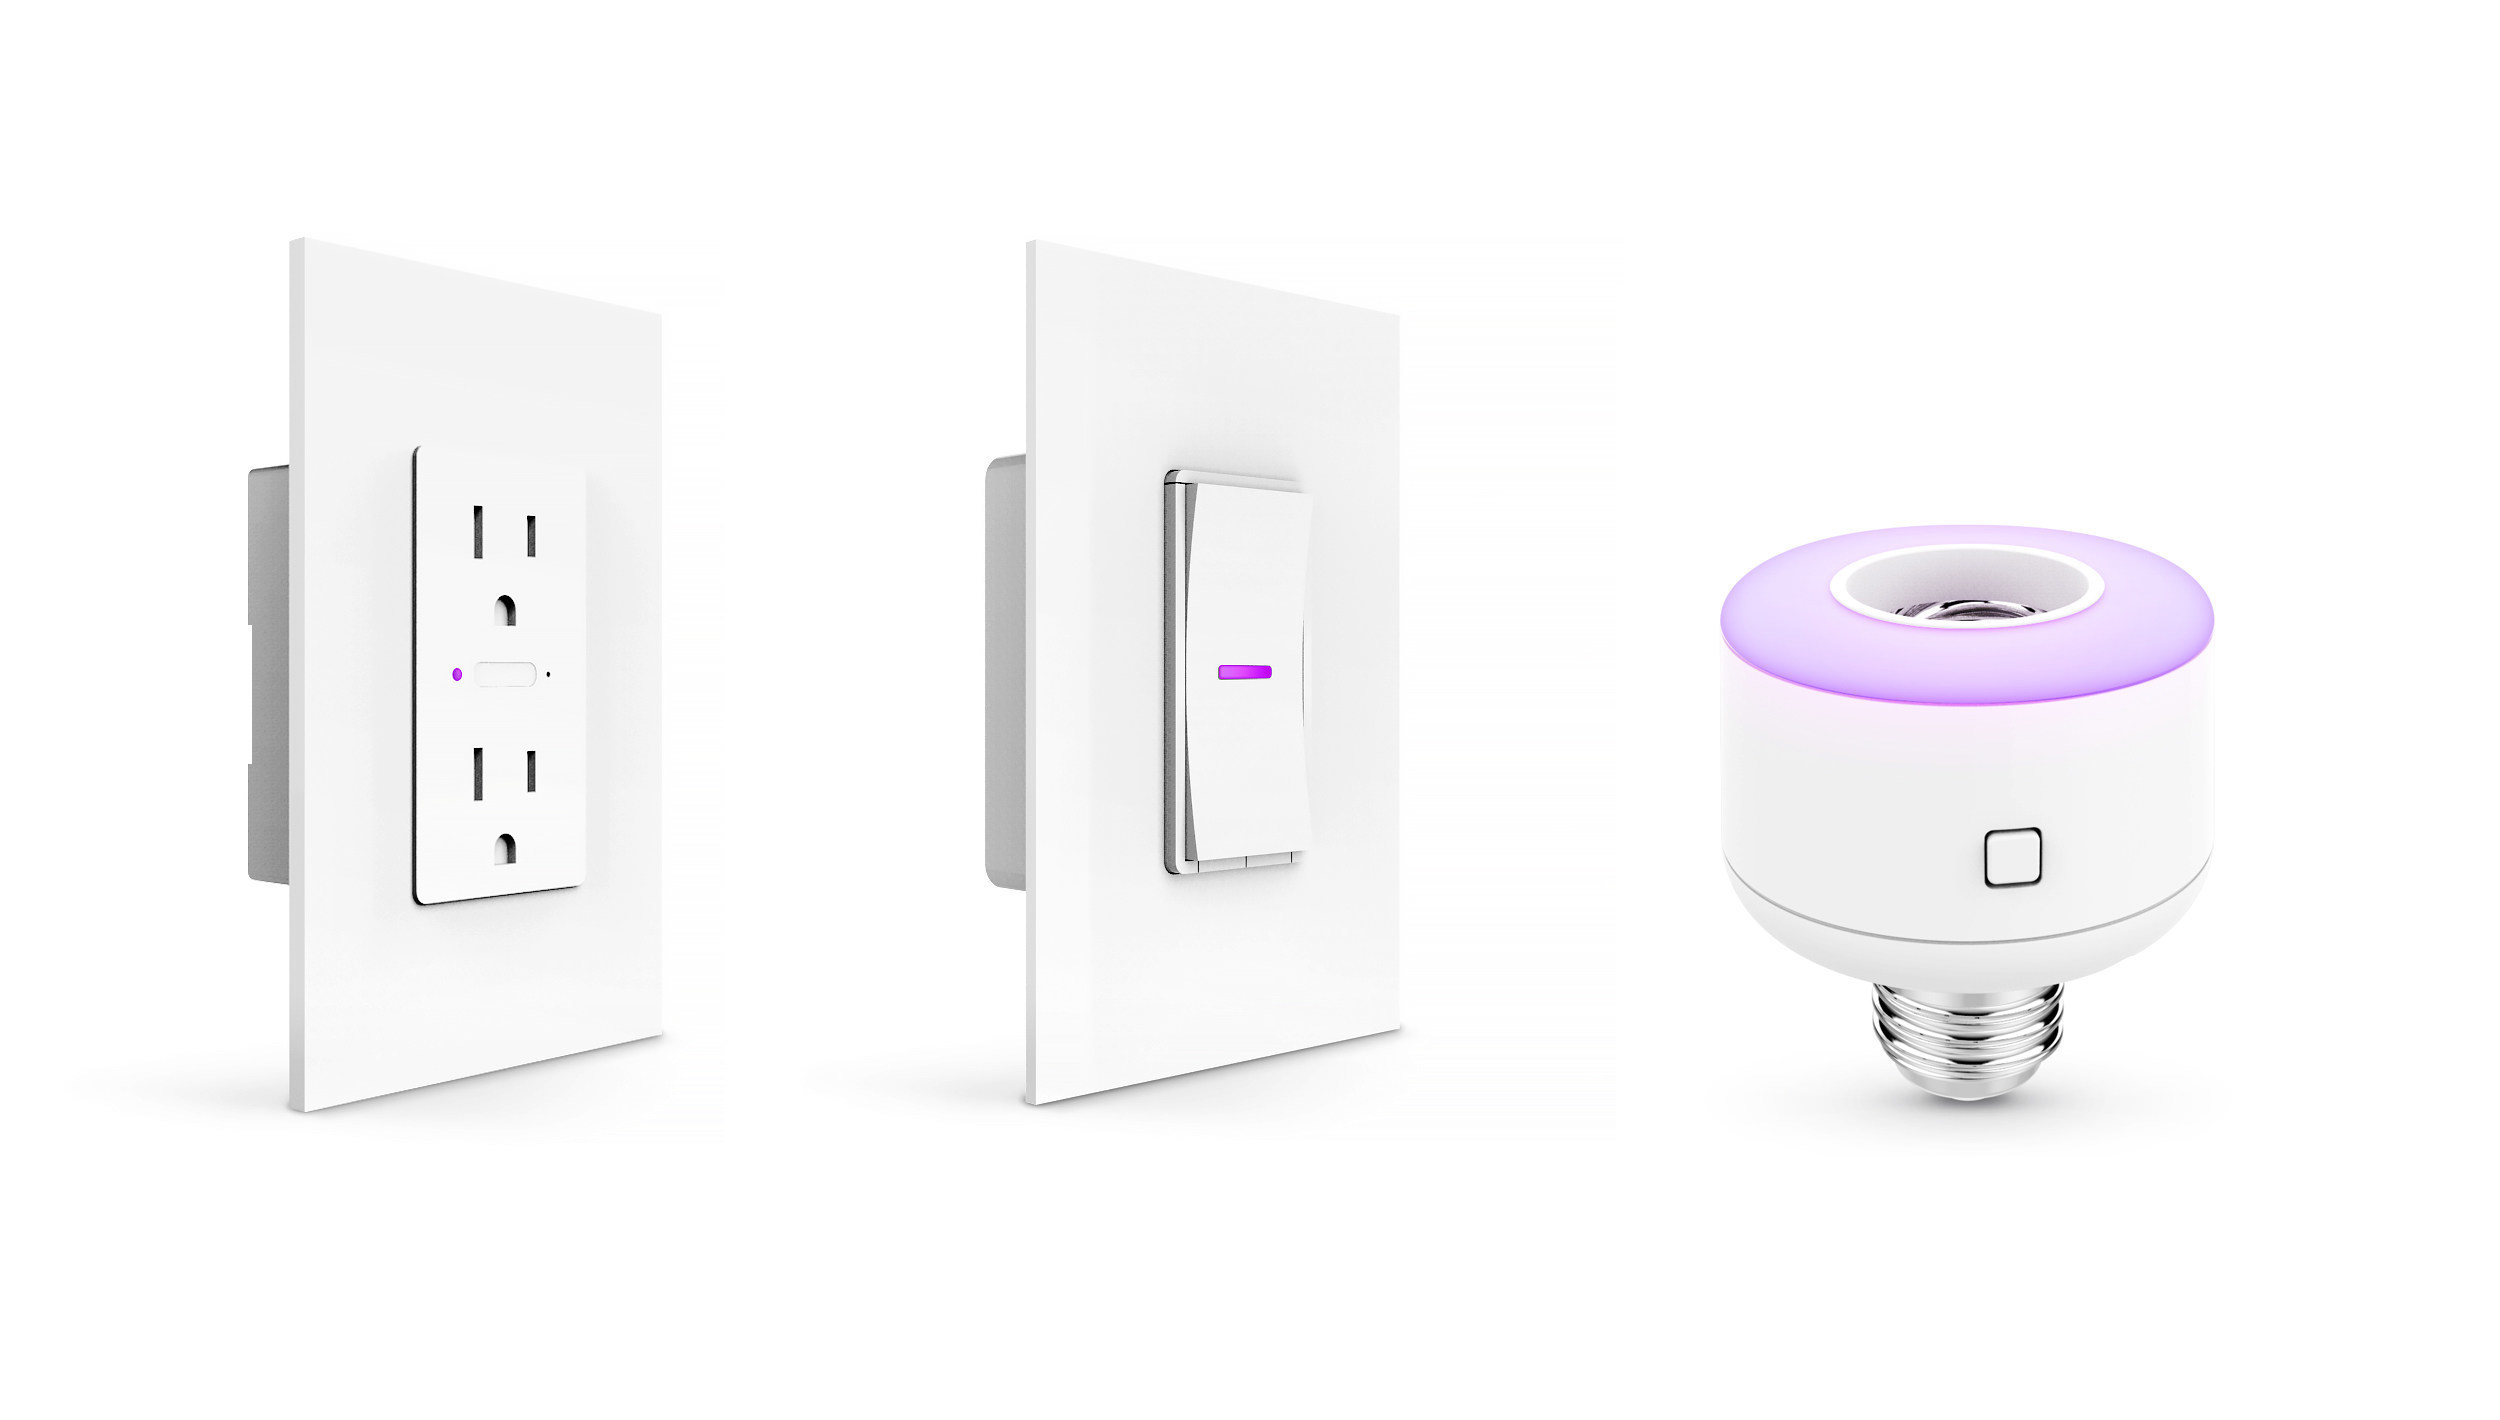 Idevices Announces Four New Connected Home Products Iot